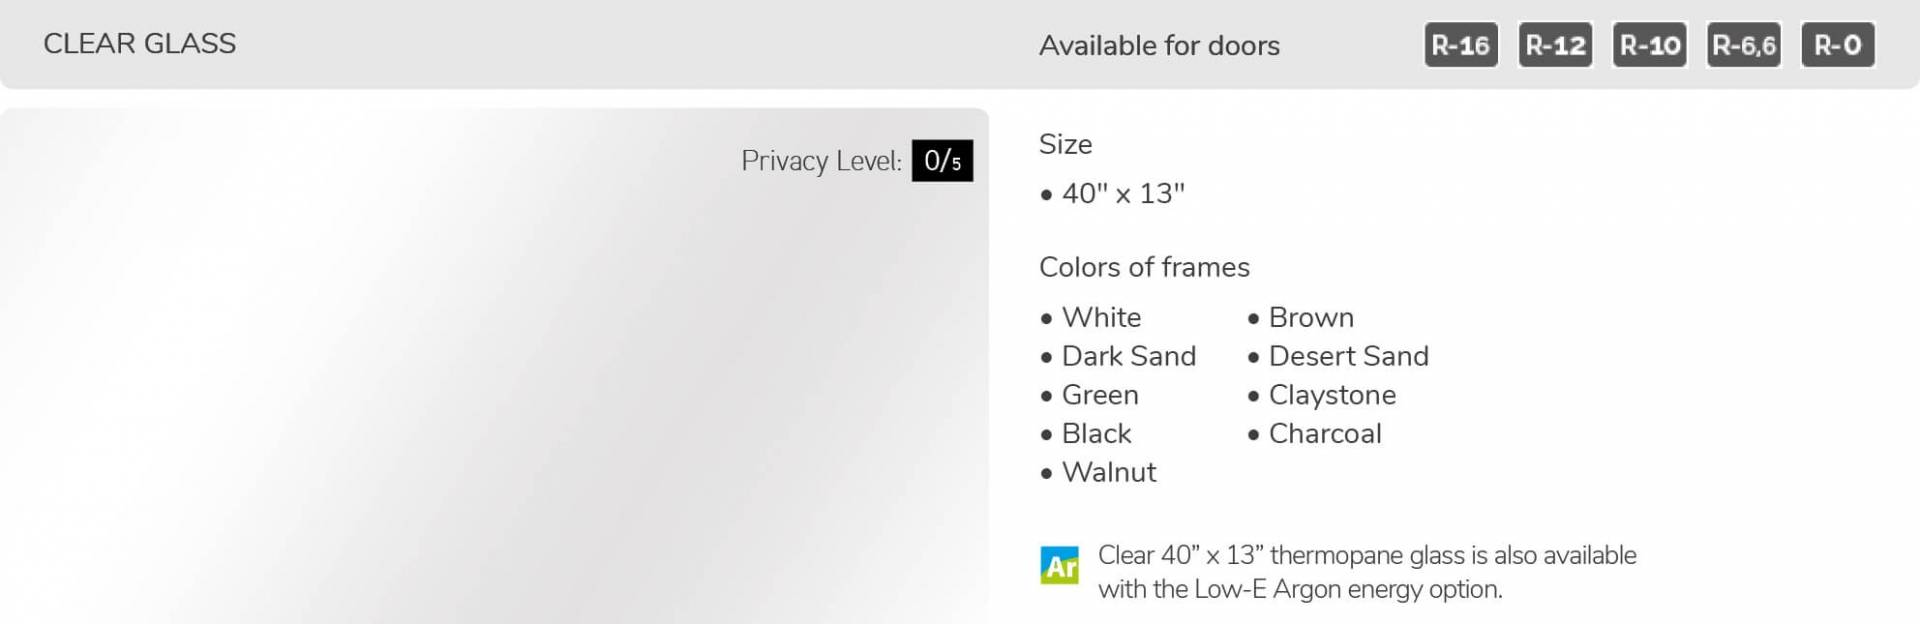 Clear glass, 40' x 13', available for doors: R-16, R-12, R-10, R-6.6, R-0